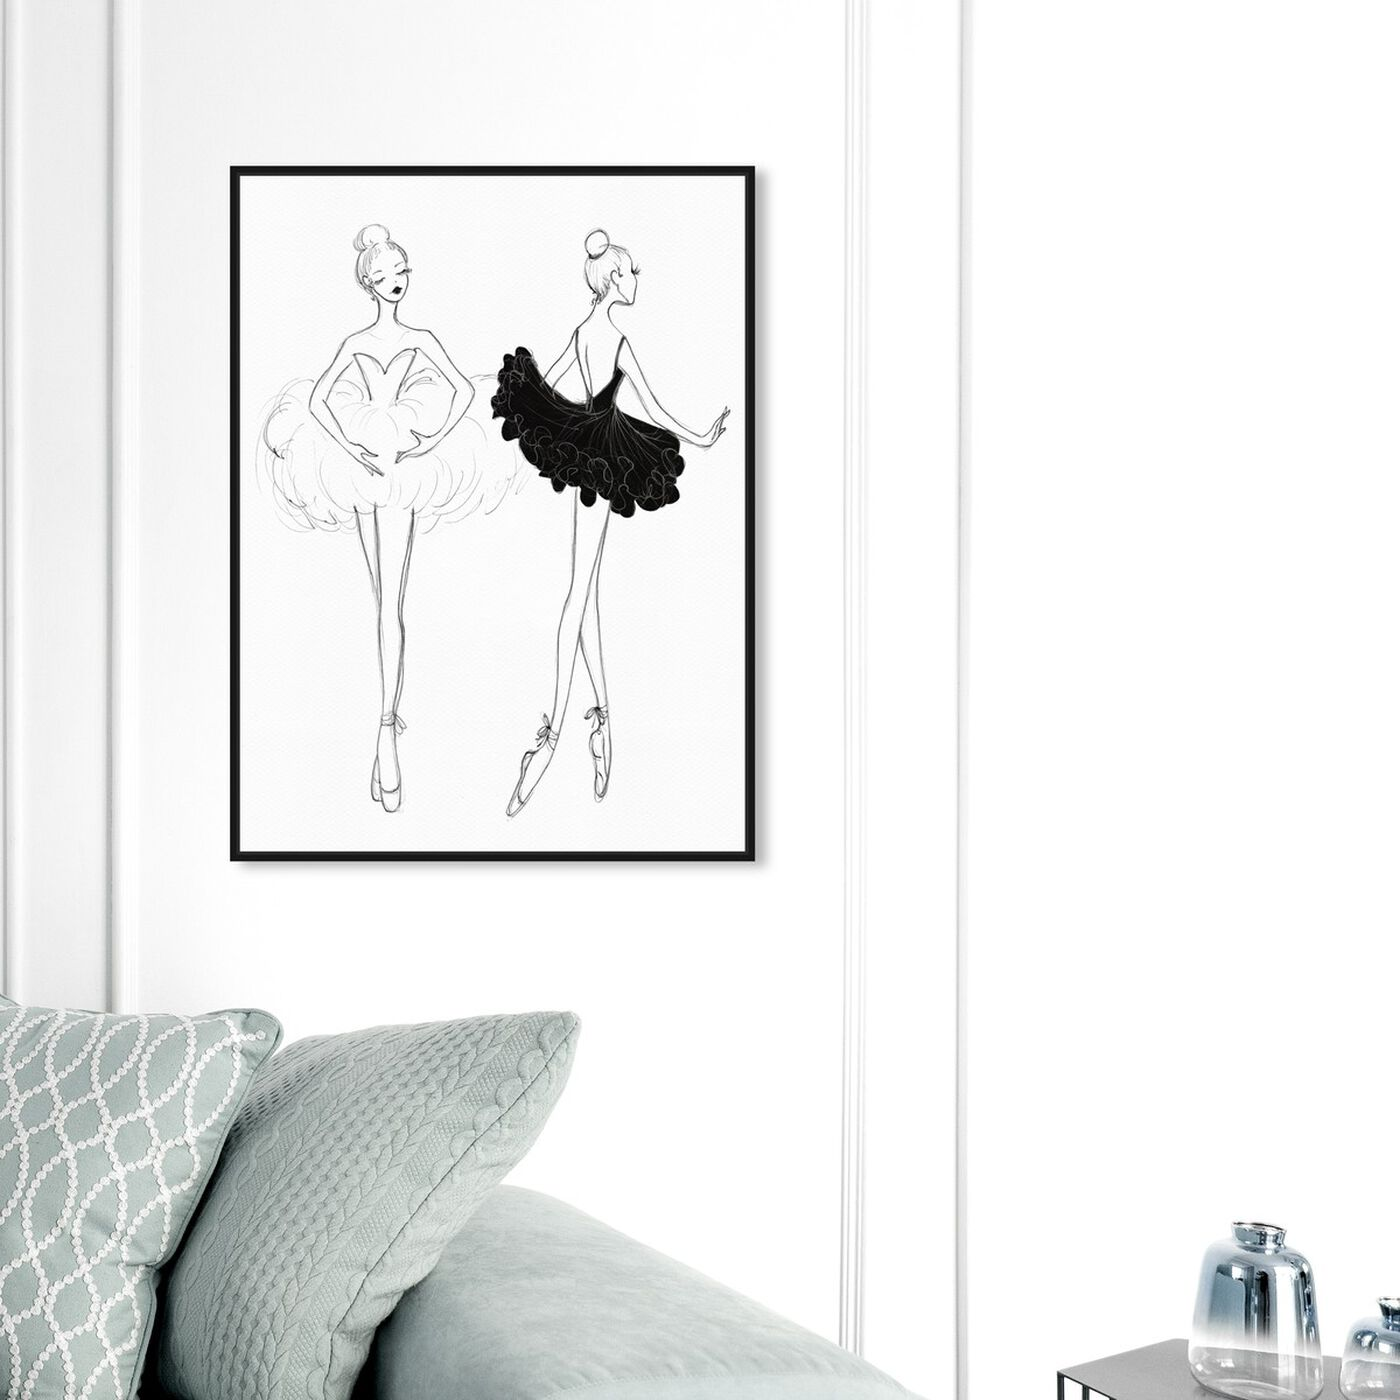 Hanging view of Ballerina Sketch IV featuring sports and teams and ballet art.